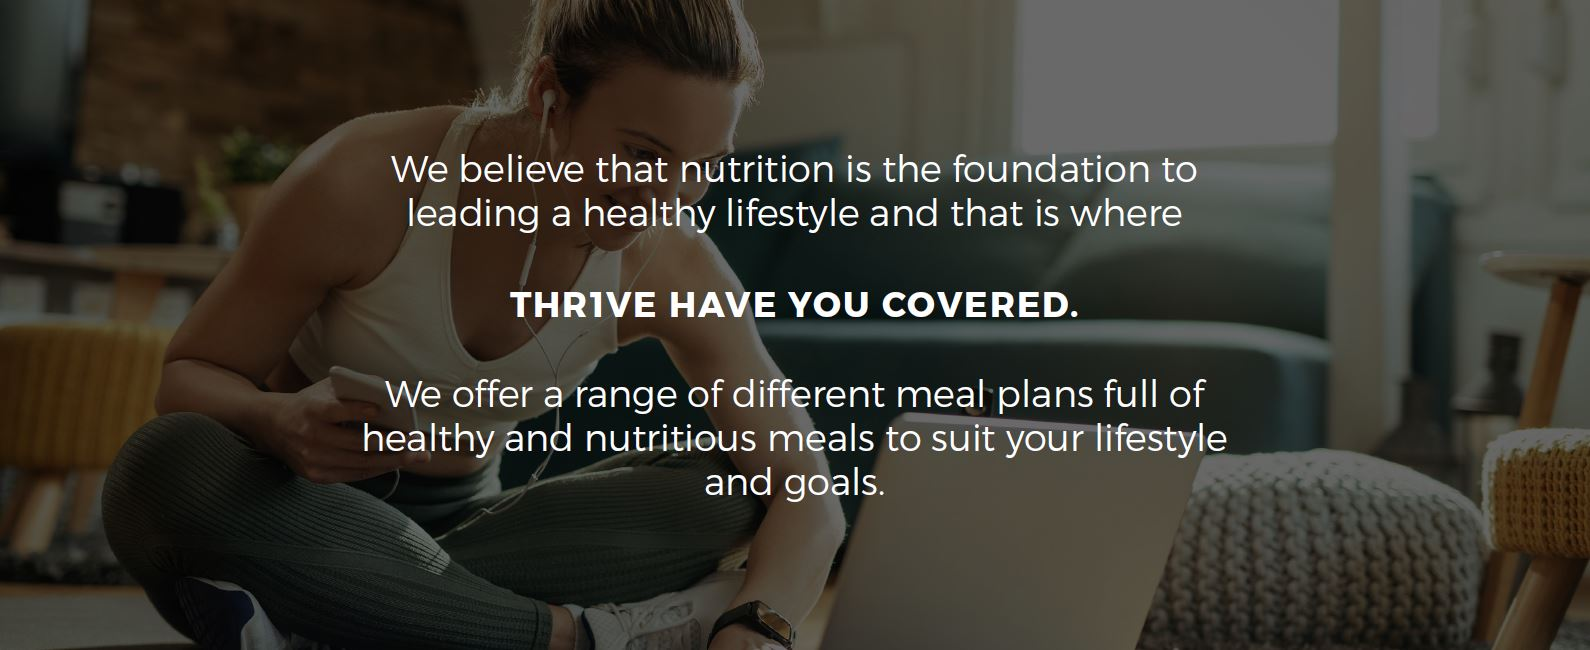 We believe that nutrition is the foundation to leading a healthy lifestyle2